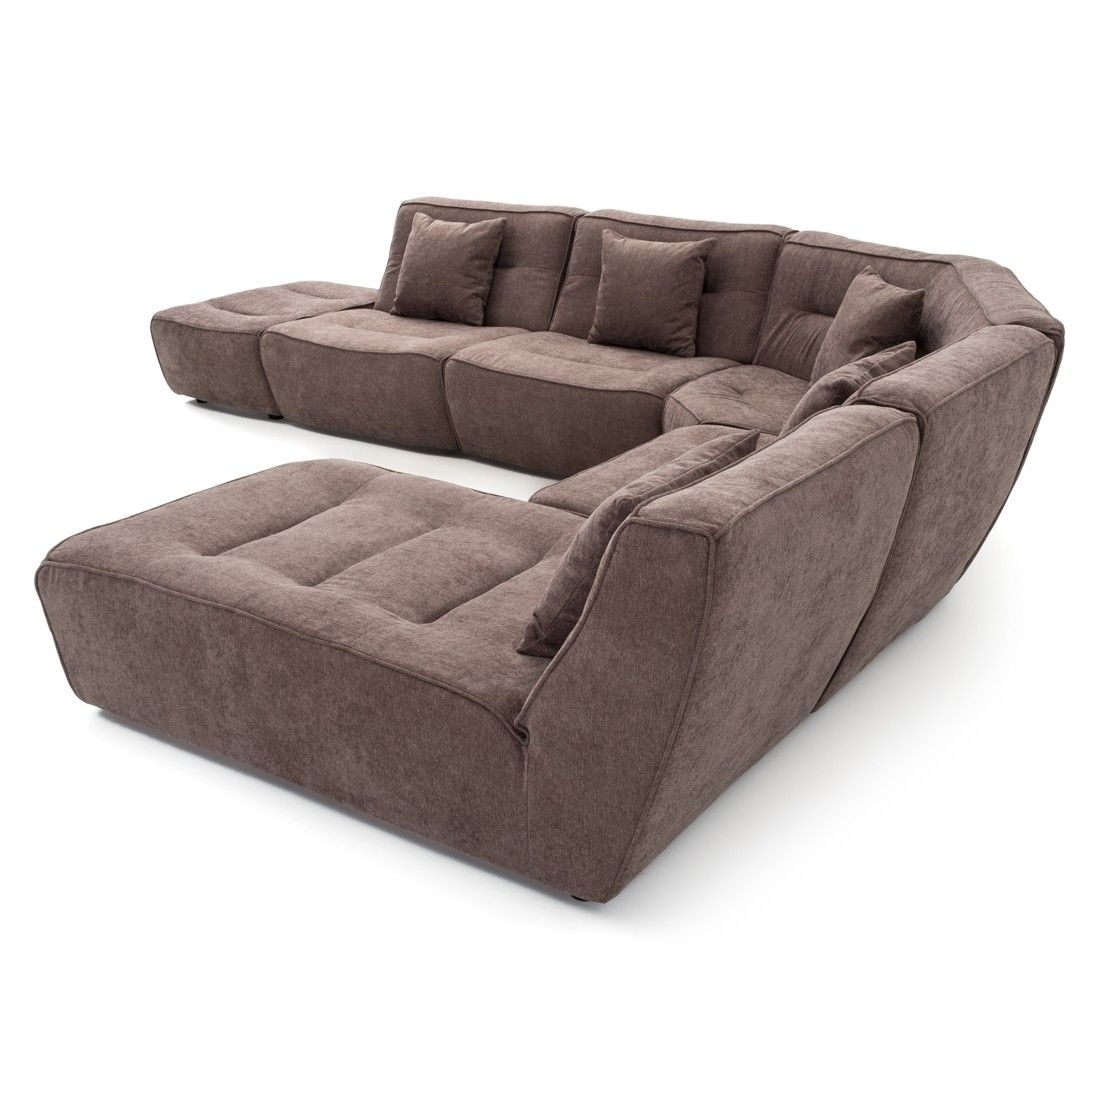 Sectionals – Soots | Mobilia | Sofa | Pinterest | Living Room Sofa In Mobilia Sectional Sofas (Image 10 of 10)